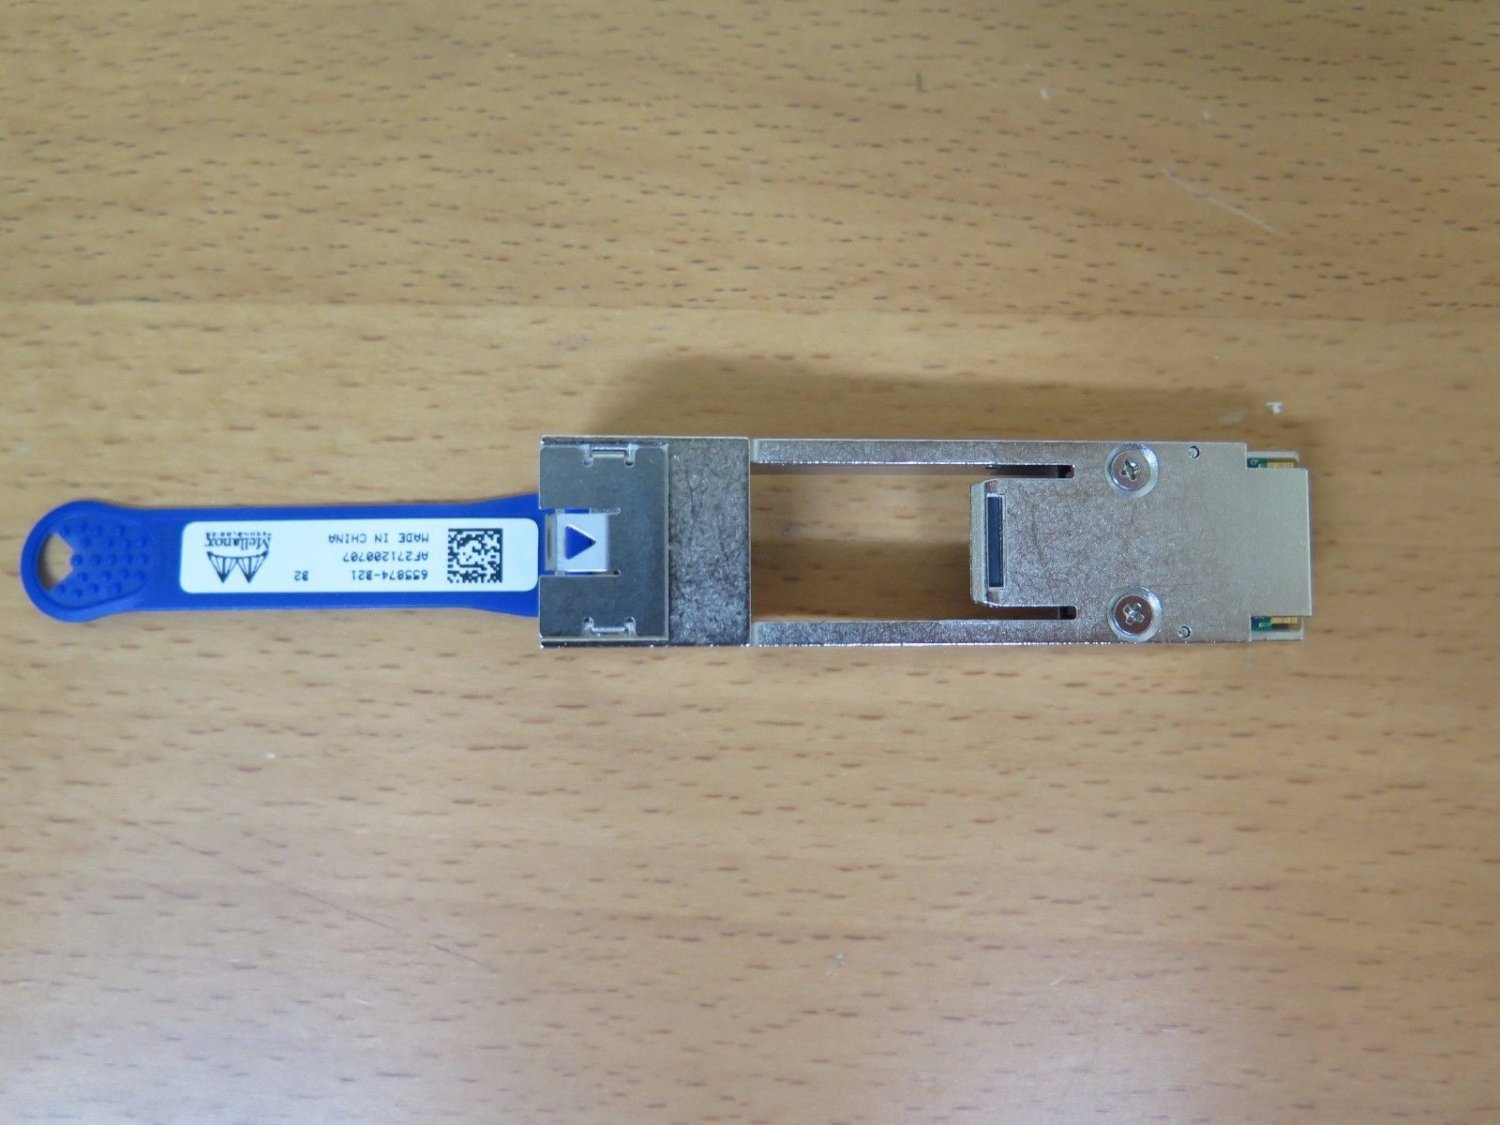 HP MELLANOX QSFP+ to SFP+ Adapter Kit MAM1Q00A-QSA 655874-B21